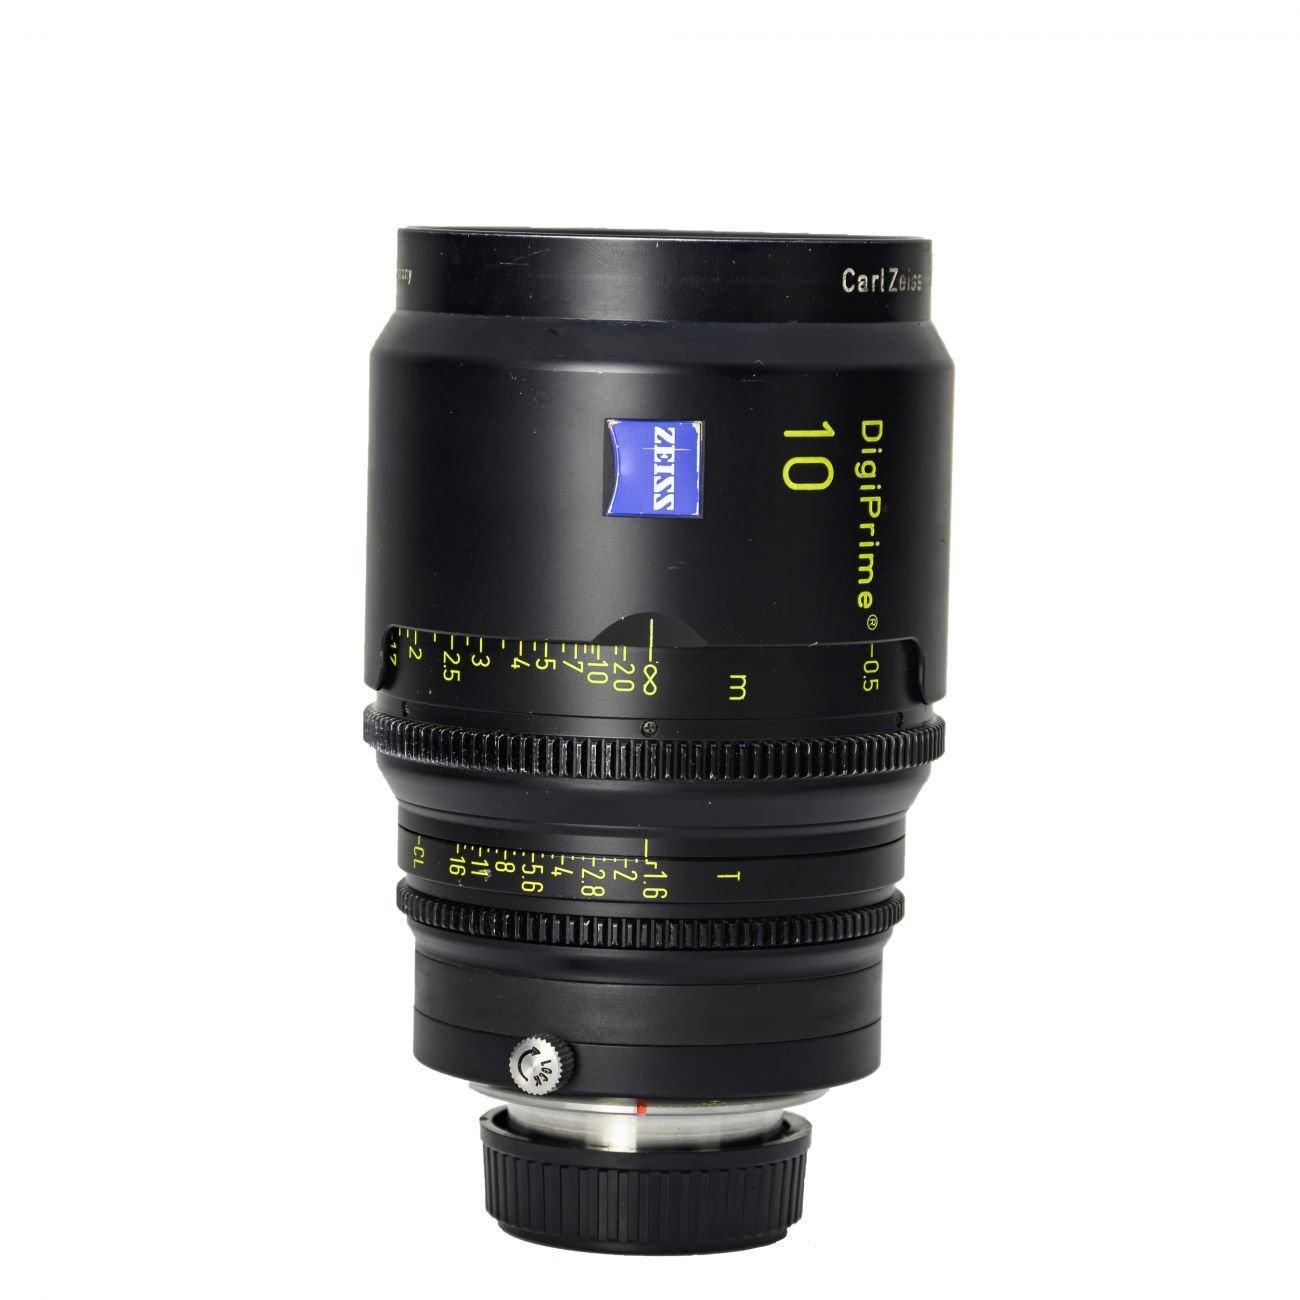 10mm lens Carl Zeiss DigiPrime Distagon T1.6 B4-mount